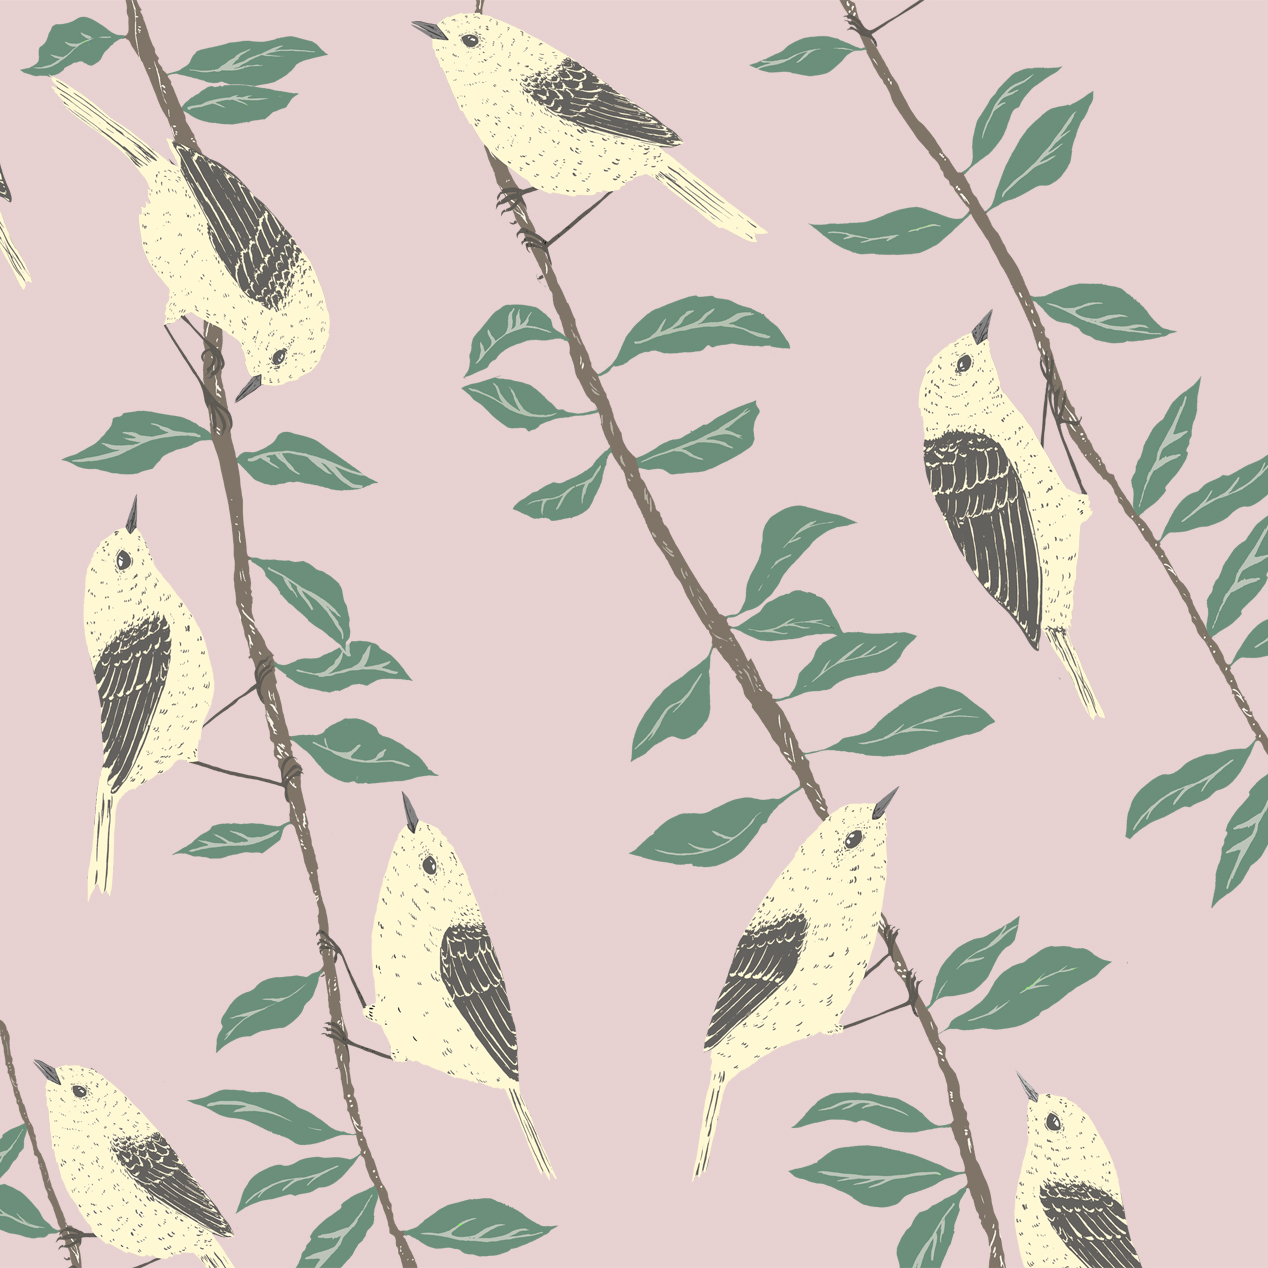 melissa-boardman-bird-in-vines-detailed-pattern.jpg